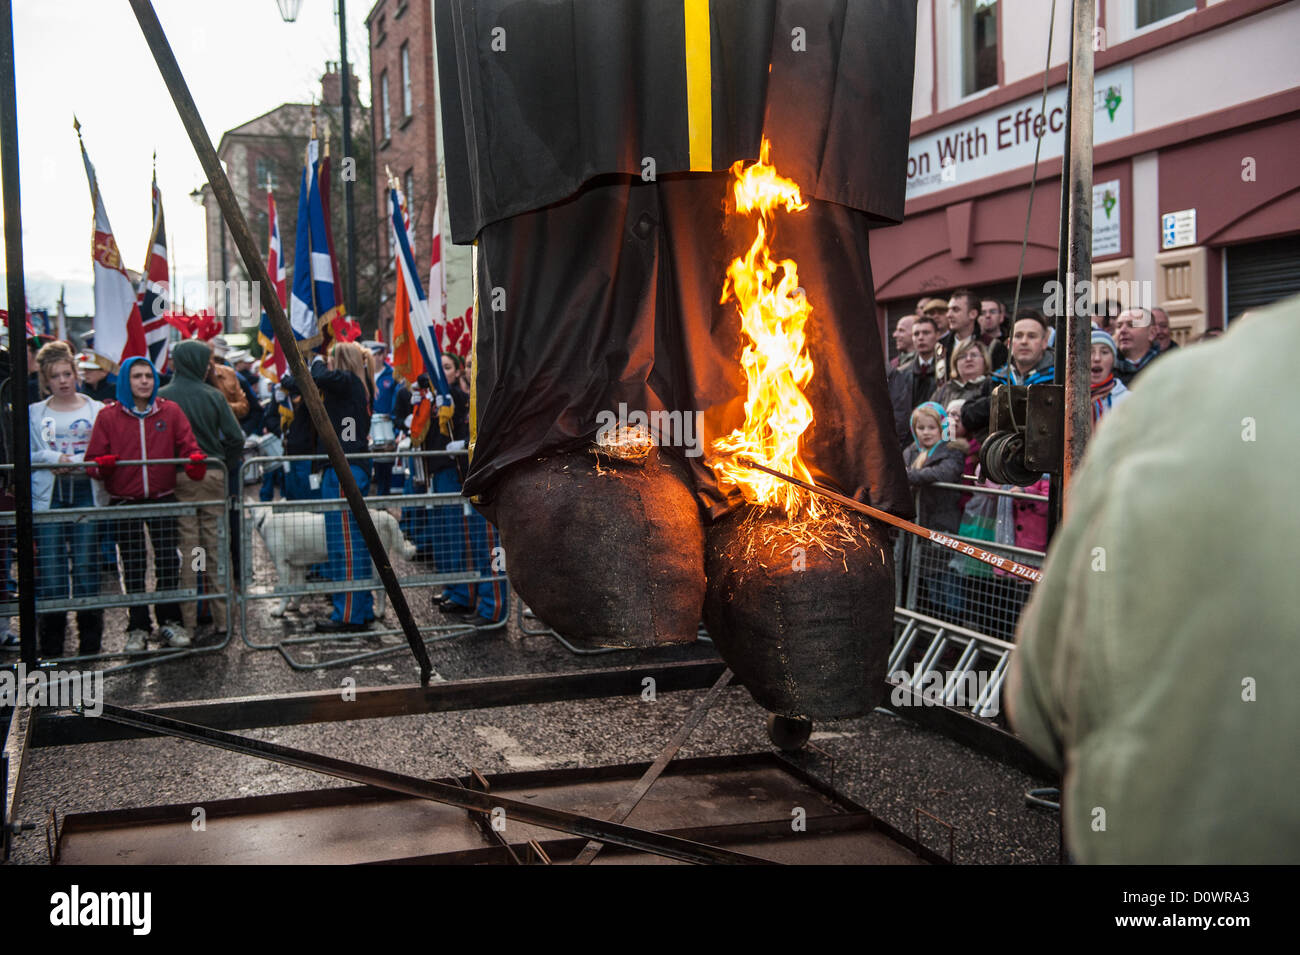 Londonderry, Northern Ireland, UK. 1st December 2012. The feet of the Lundy effigy being set alight. Stock Photo